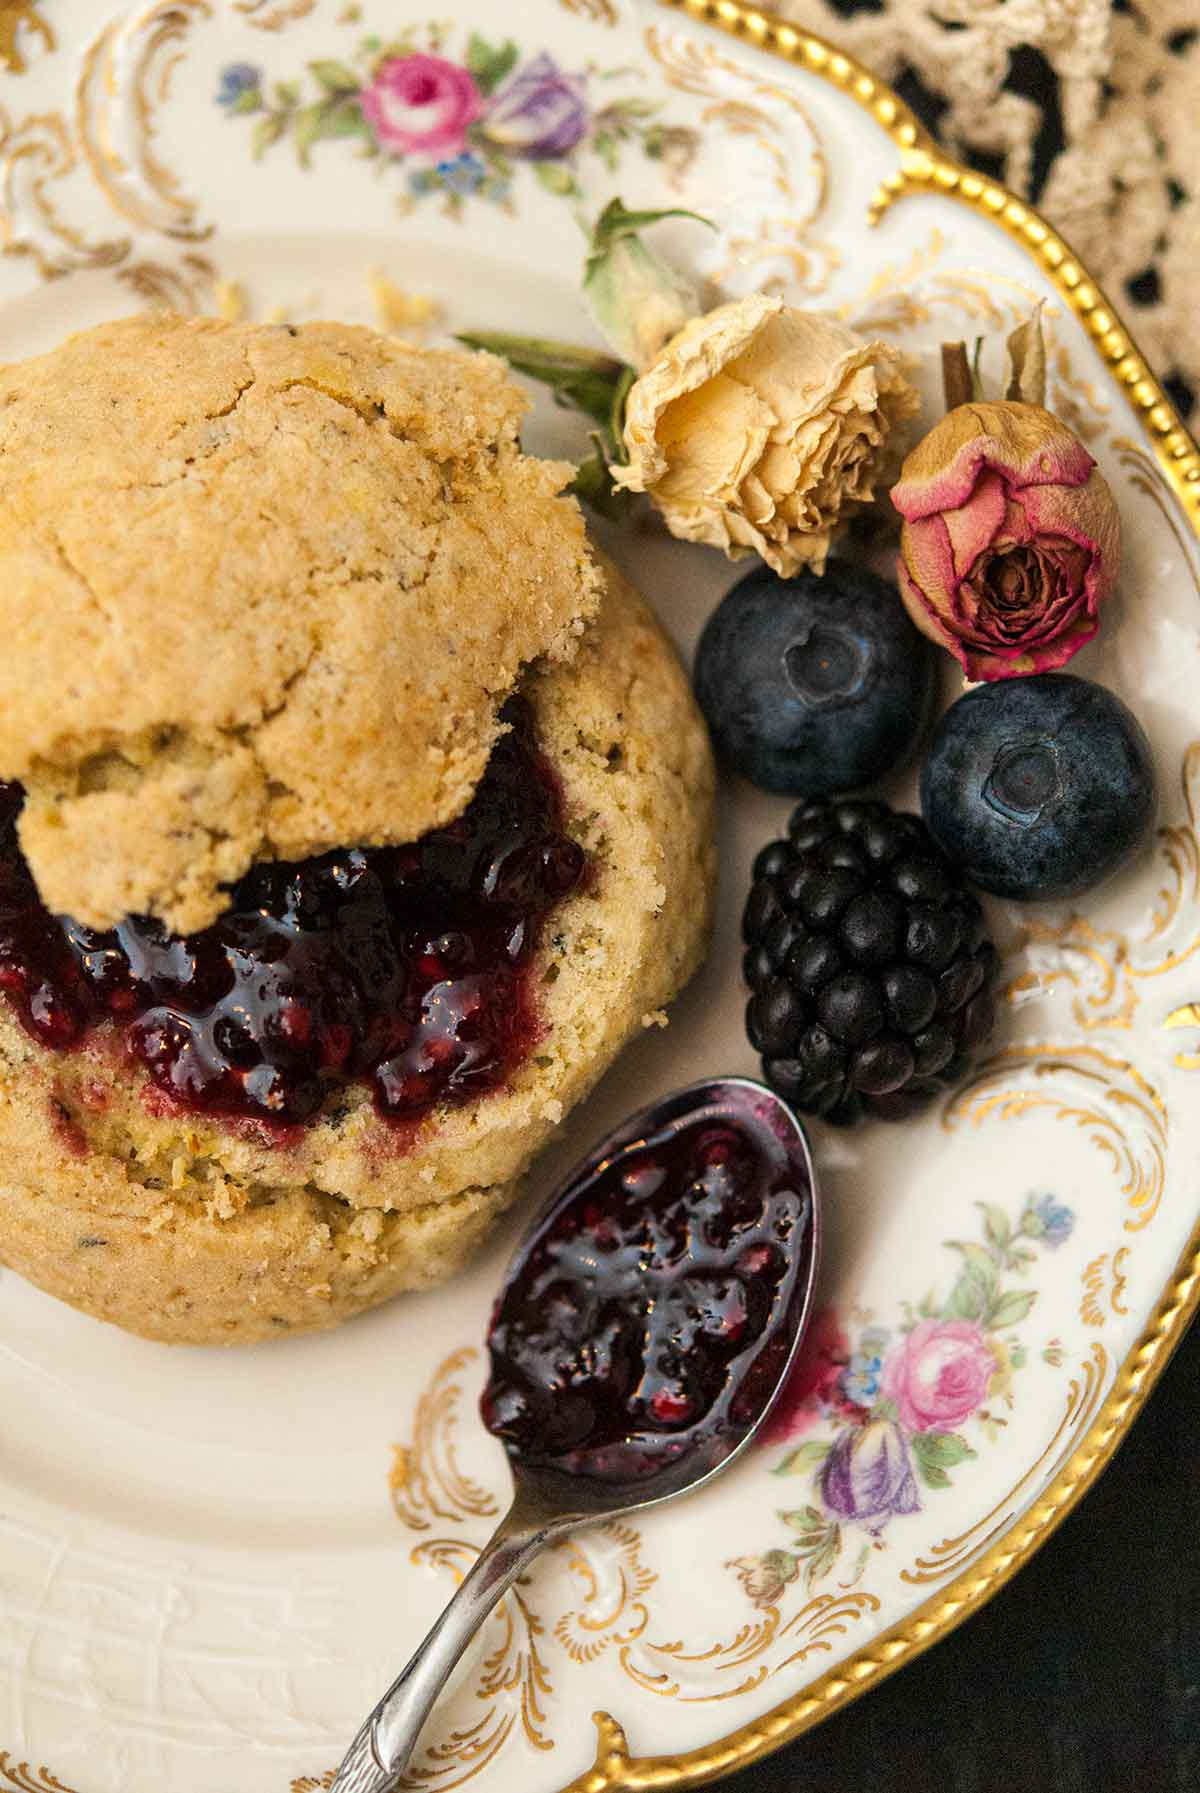 A scone with jam on a decorative plate next to a spoon with jam, a few berries and a few dry roses.